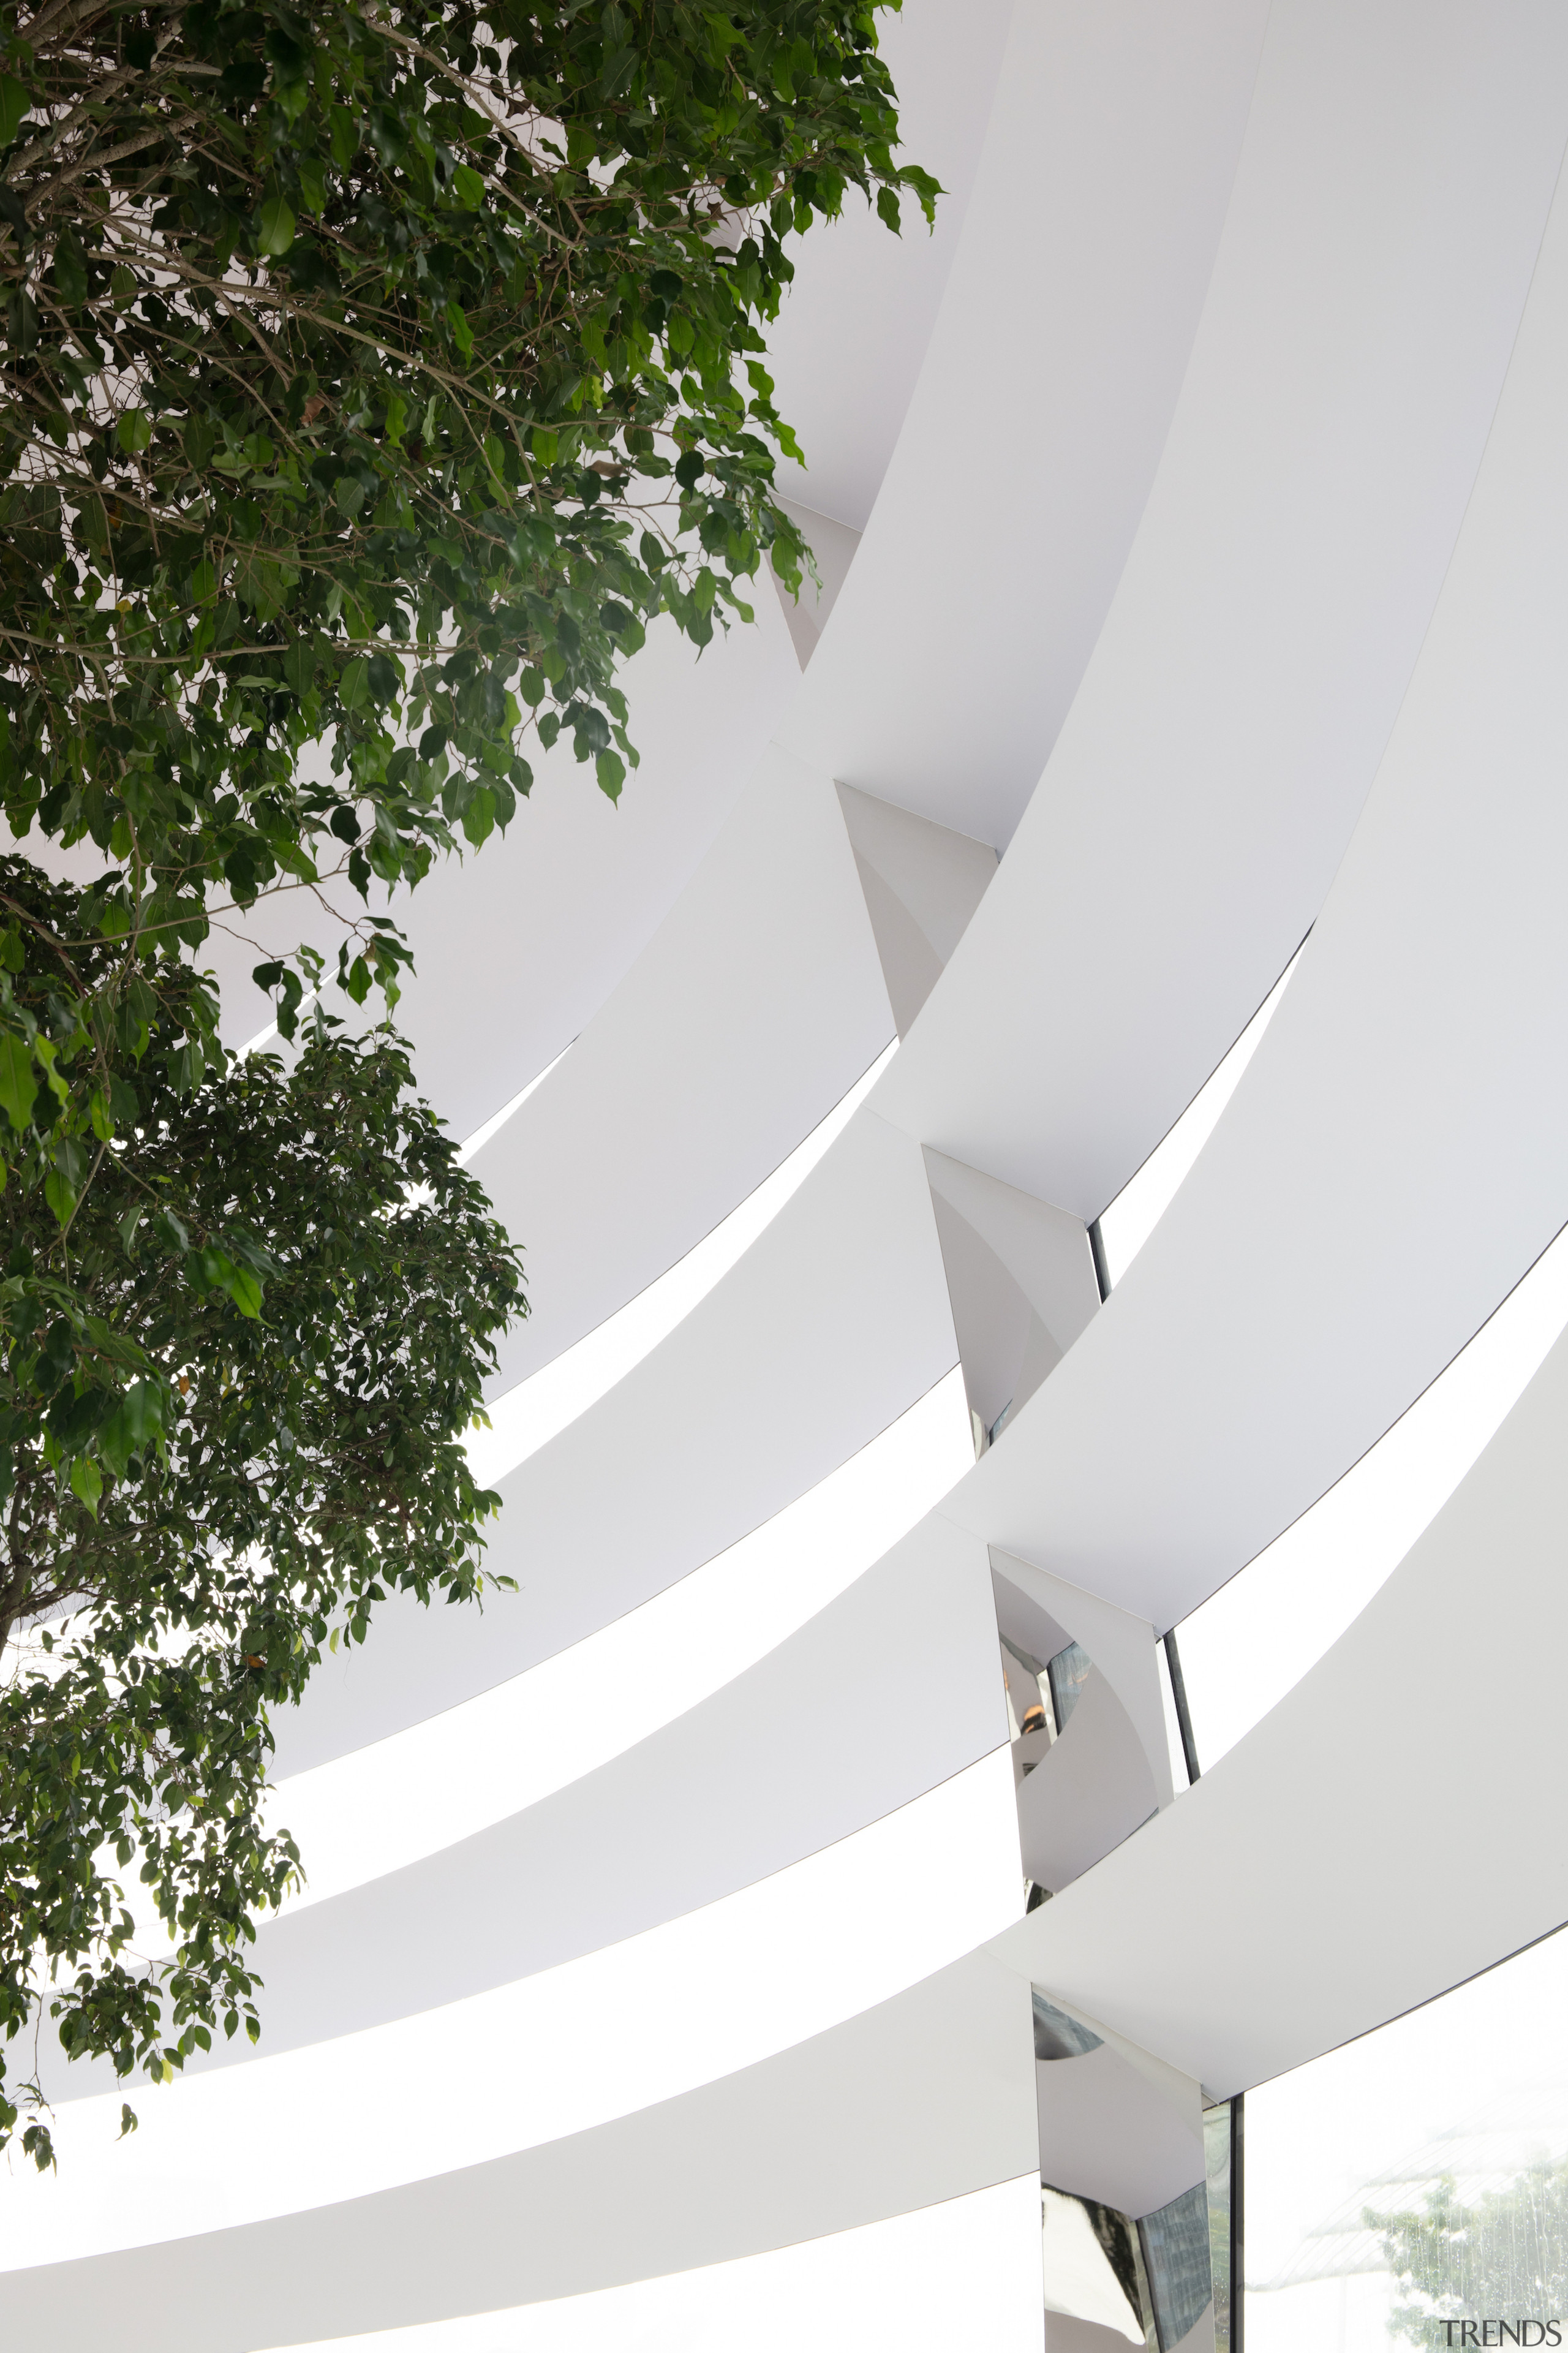 Structurally, the dome acts as a hybrid steel